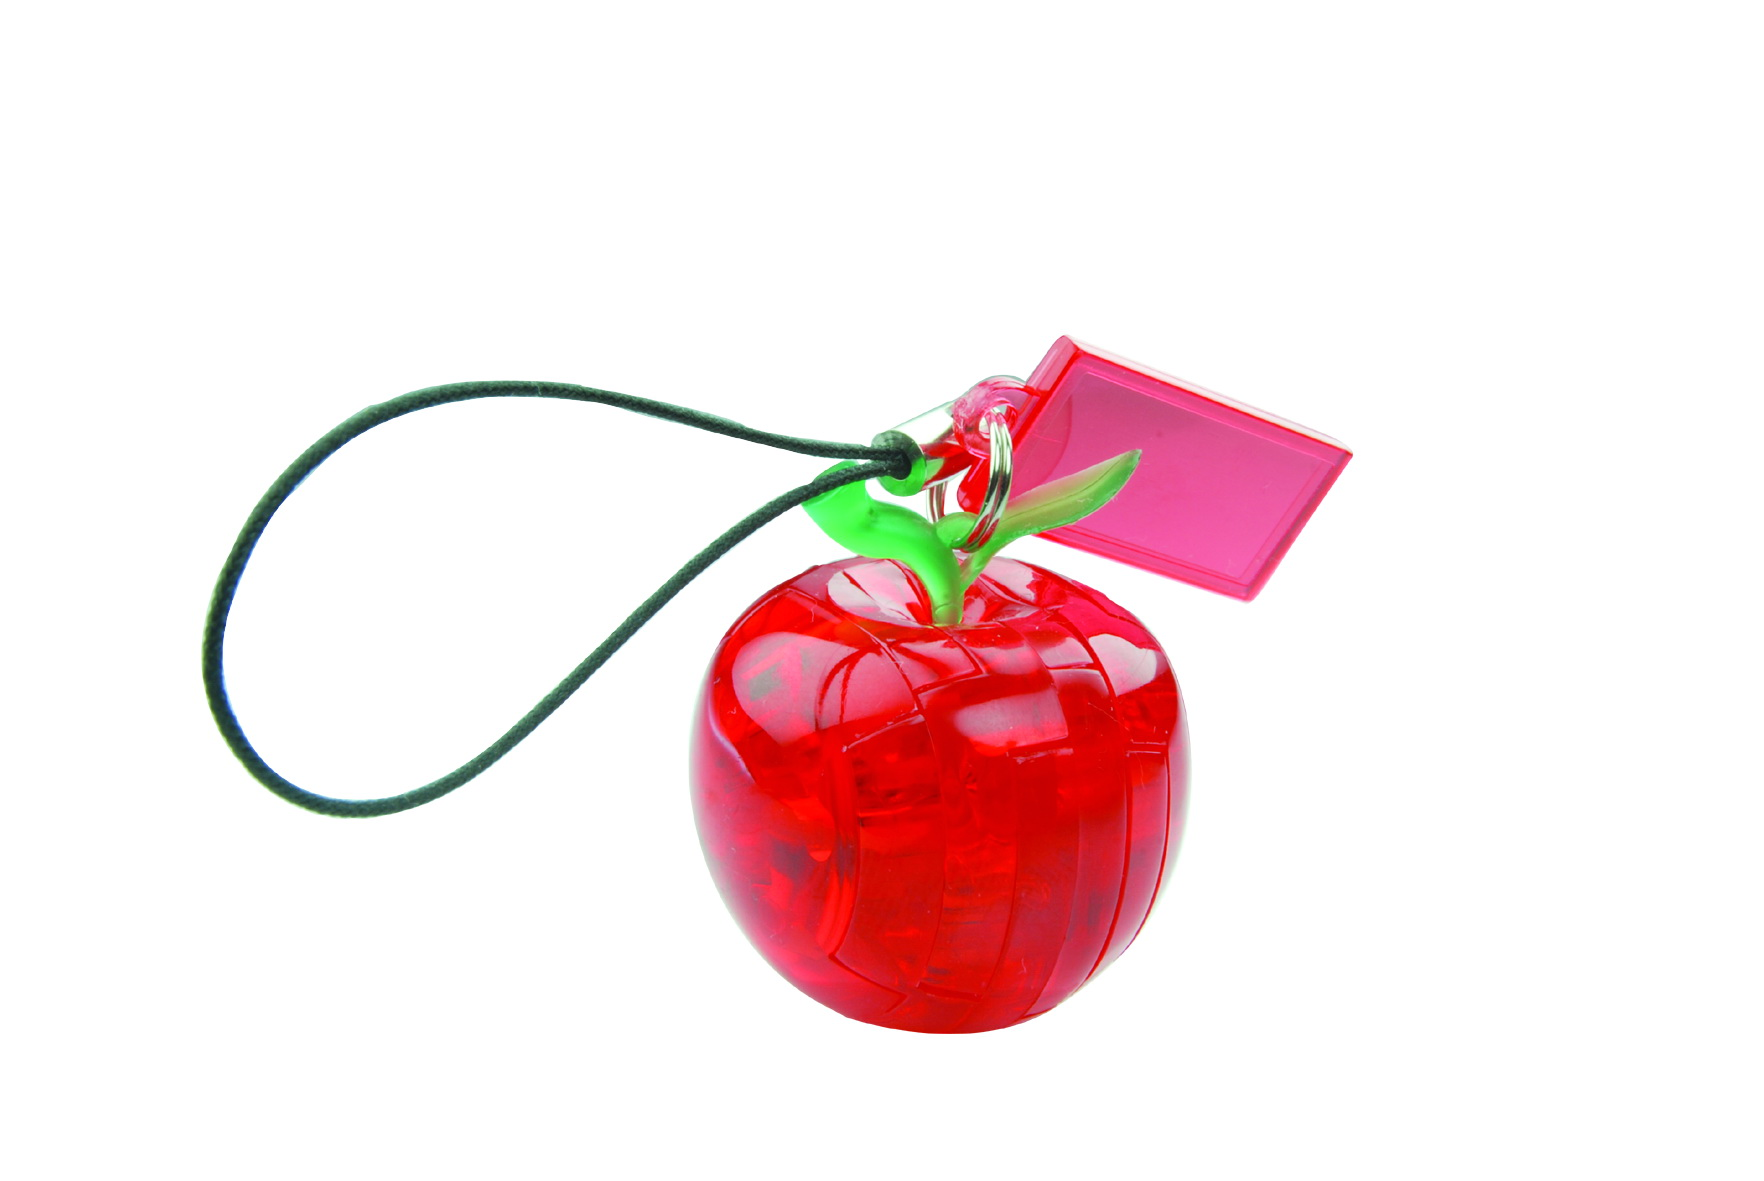 Mini Red apple